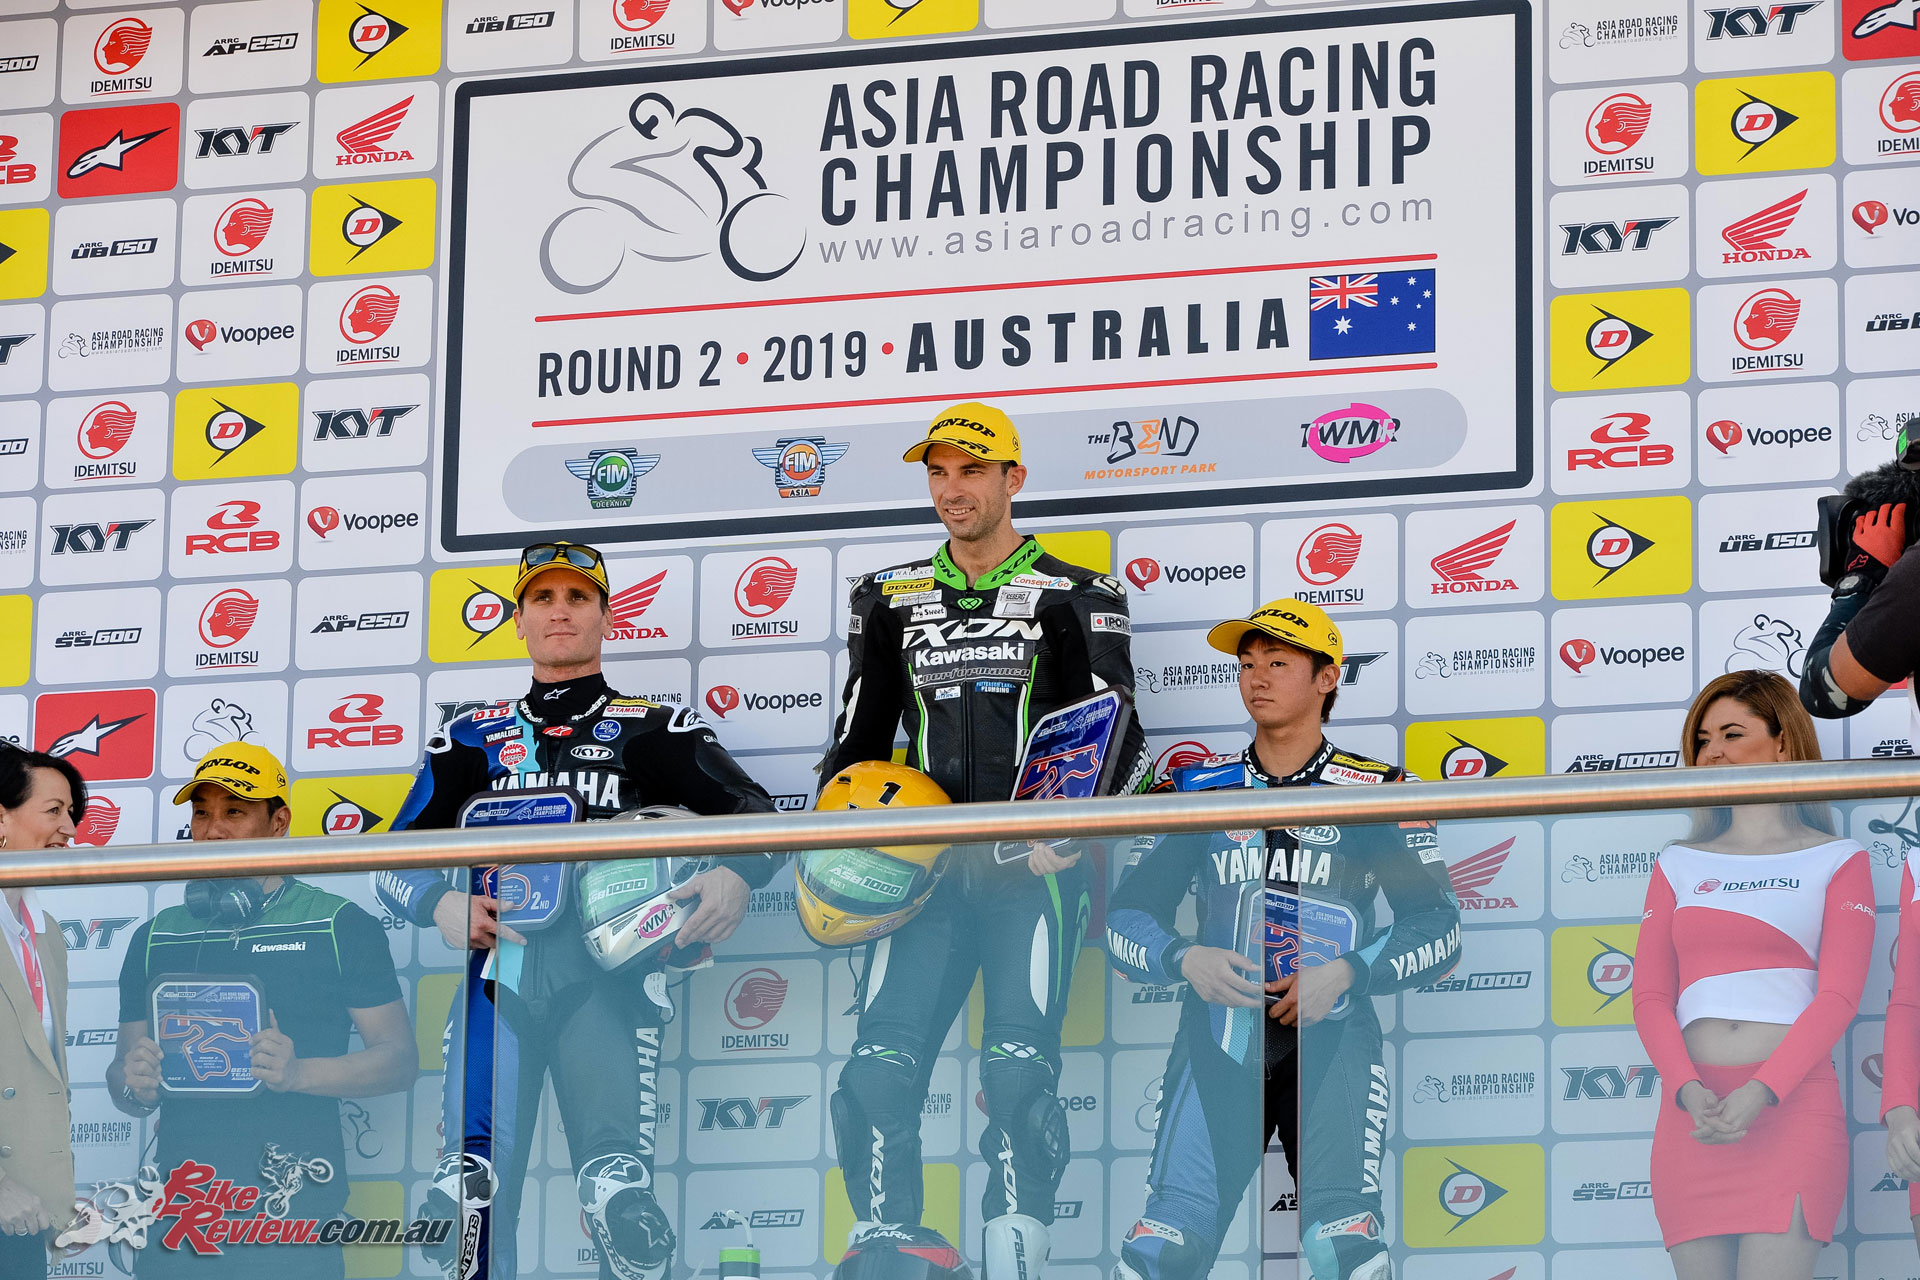 Bryan Staring on the ARRC podium at Talem Bend - Image by Foremost Media